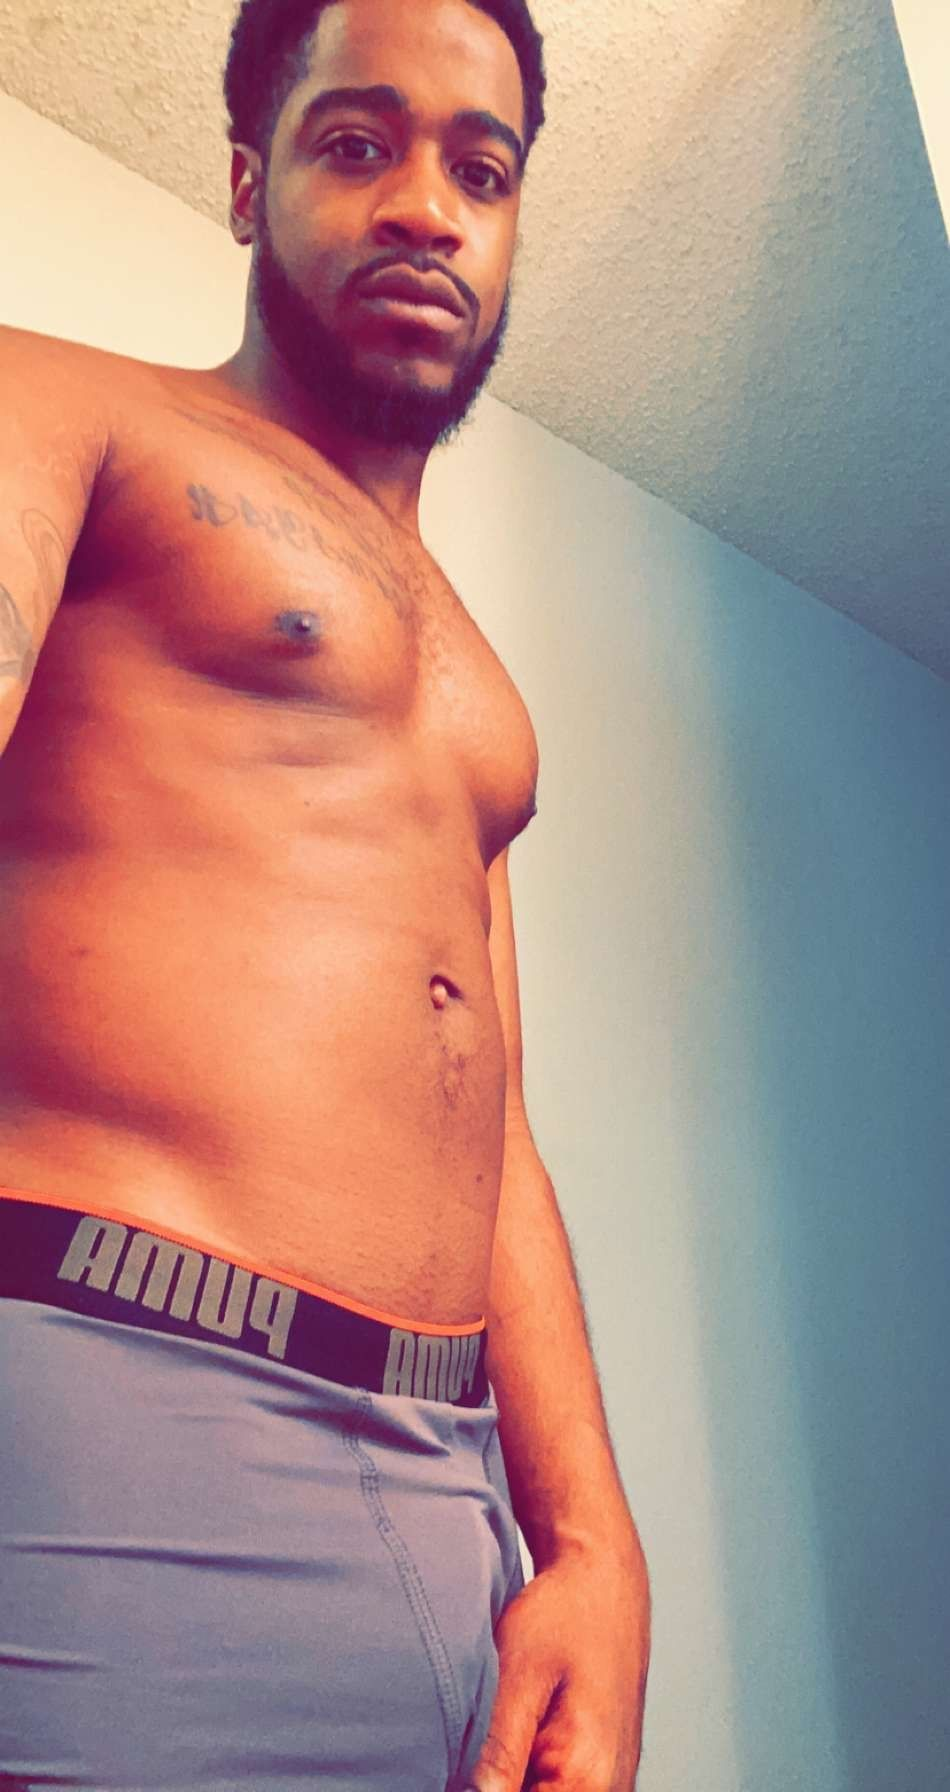 Onlyfans Naked Ty onlyfans leaked